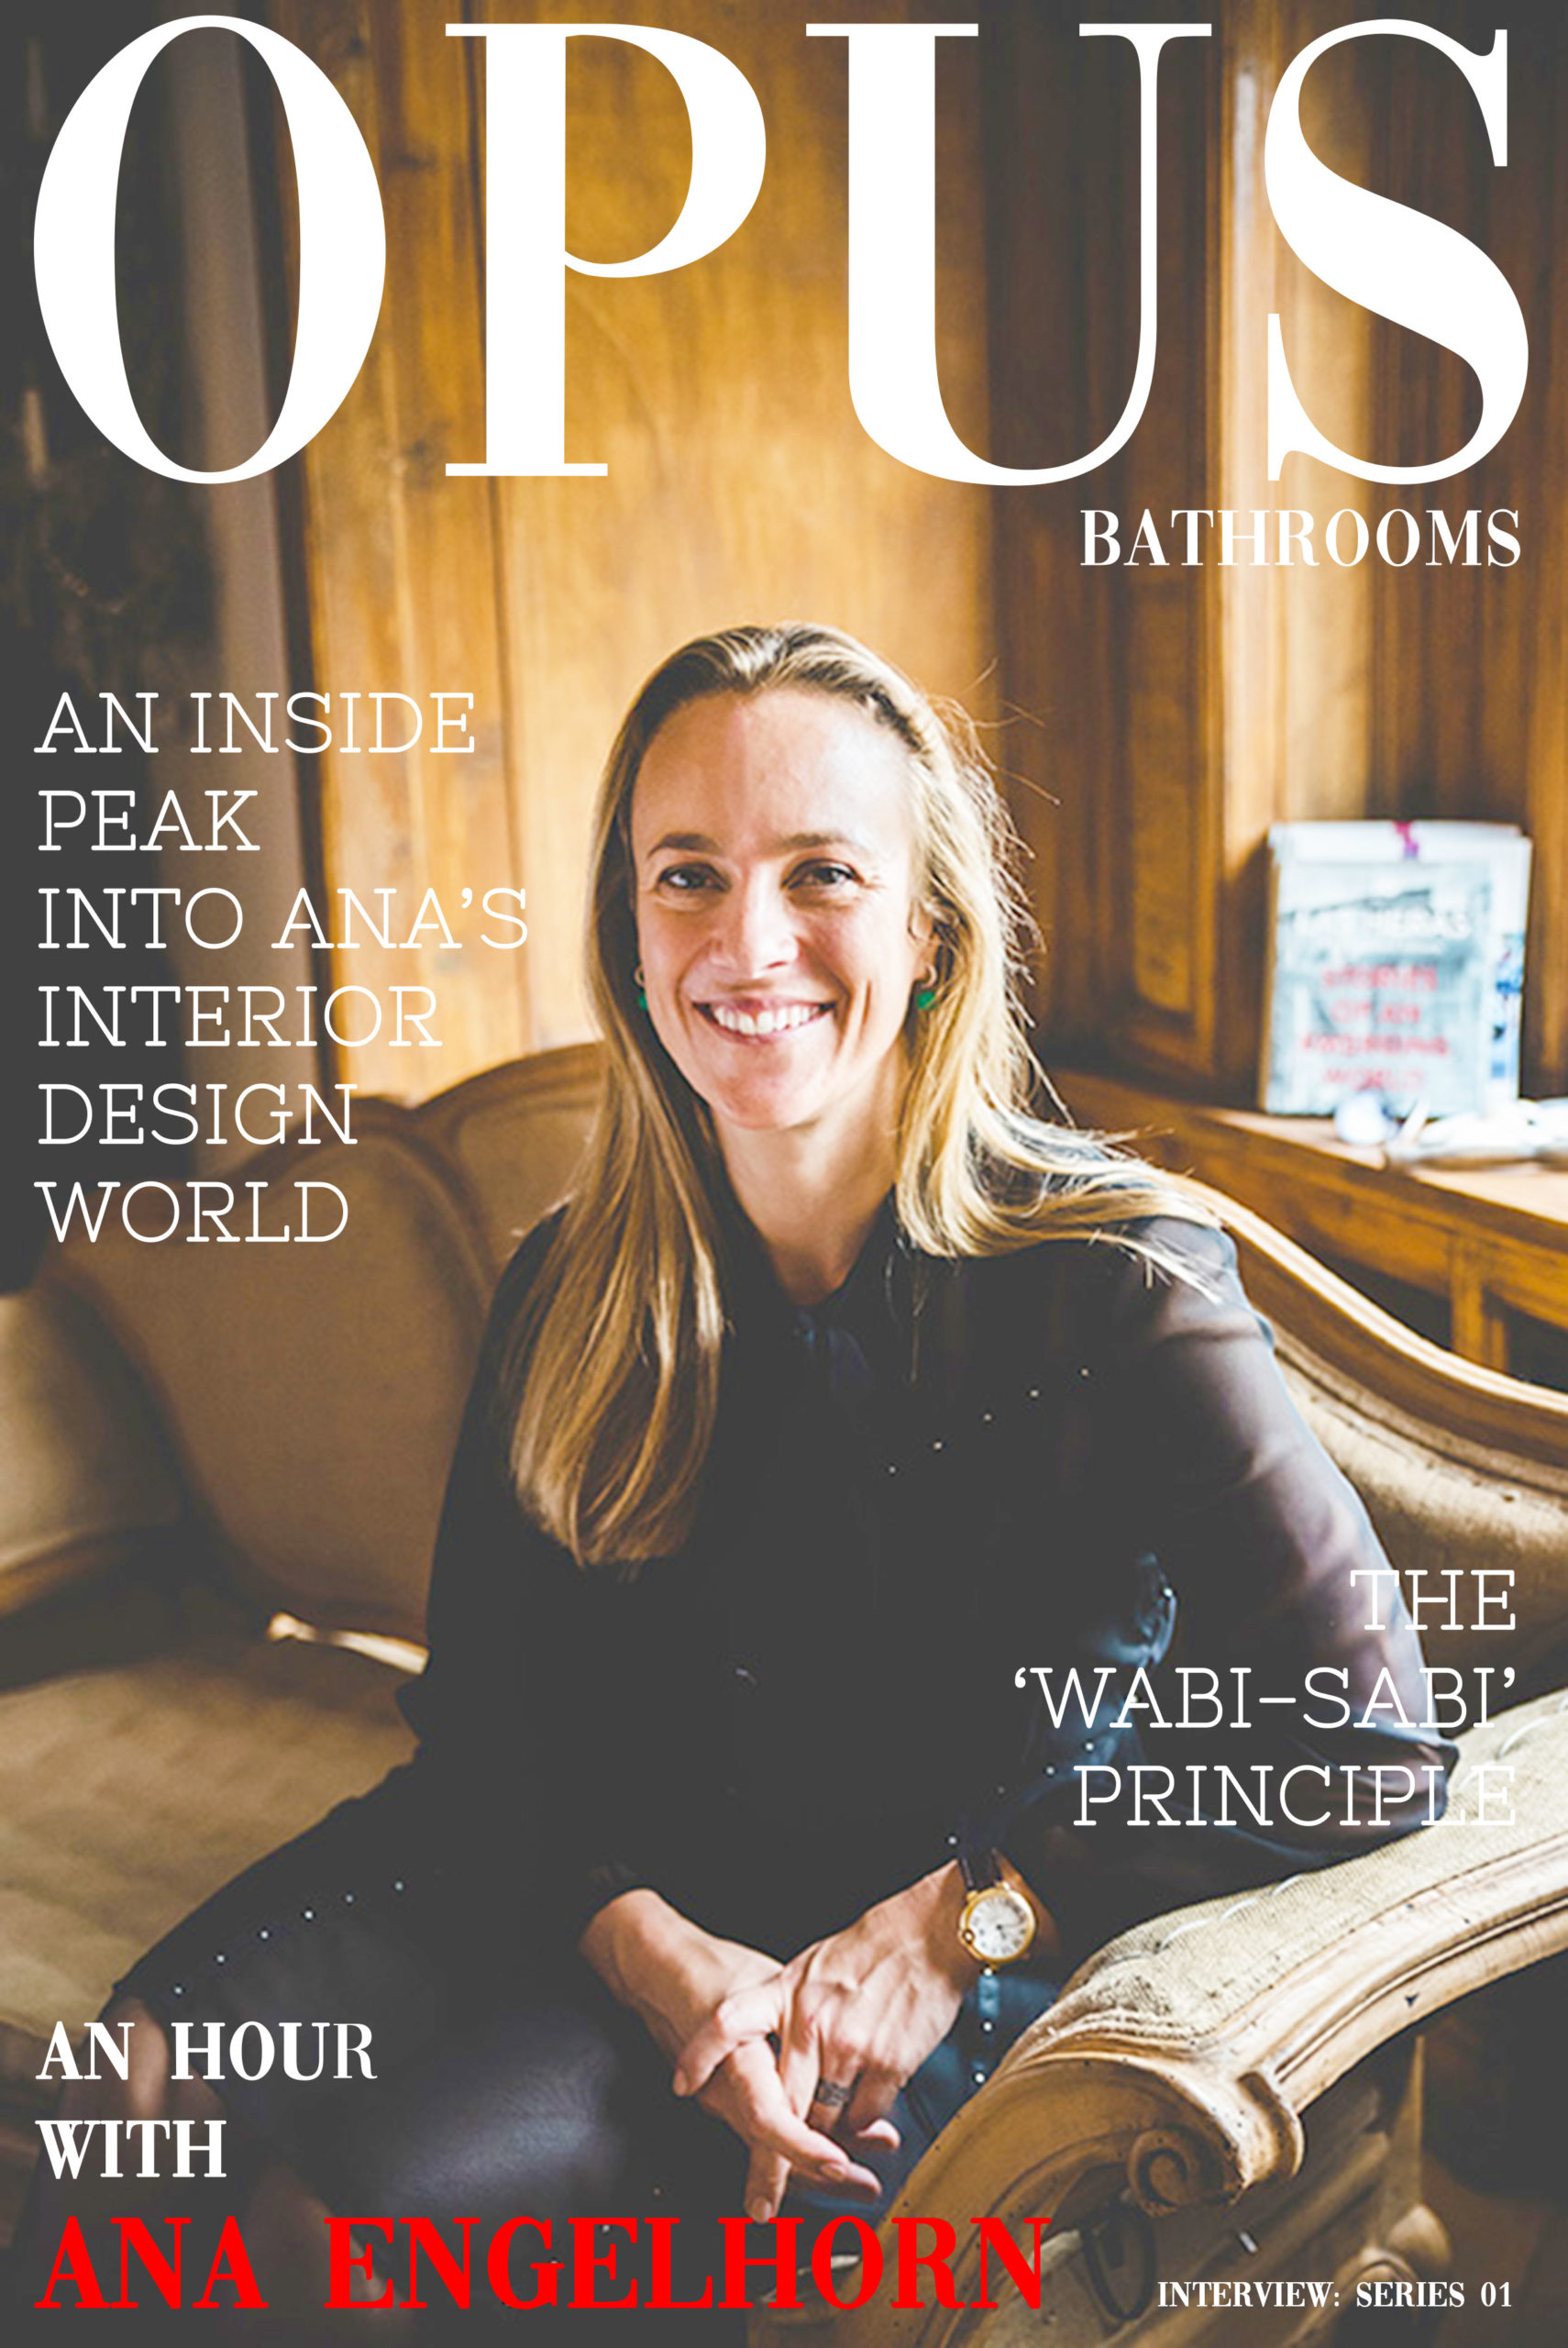 Interview | Speaking with Interior Designer Ana Engelhorn